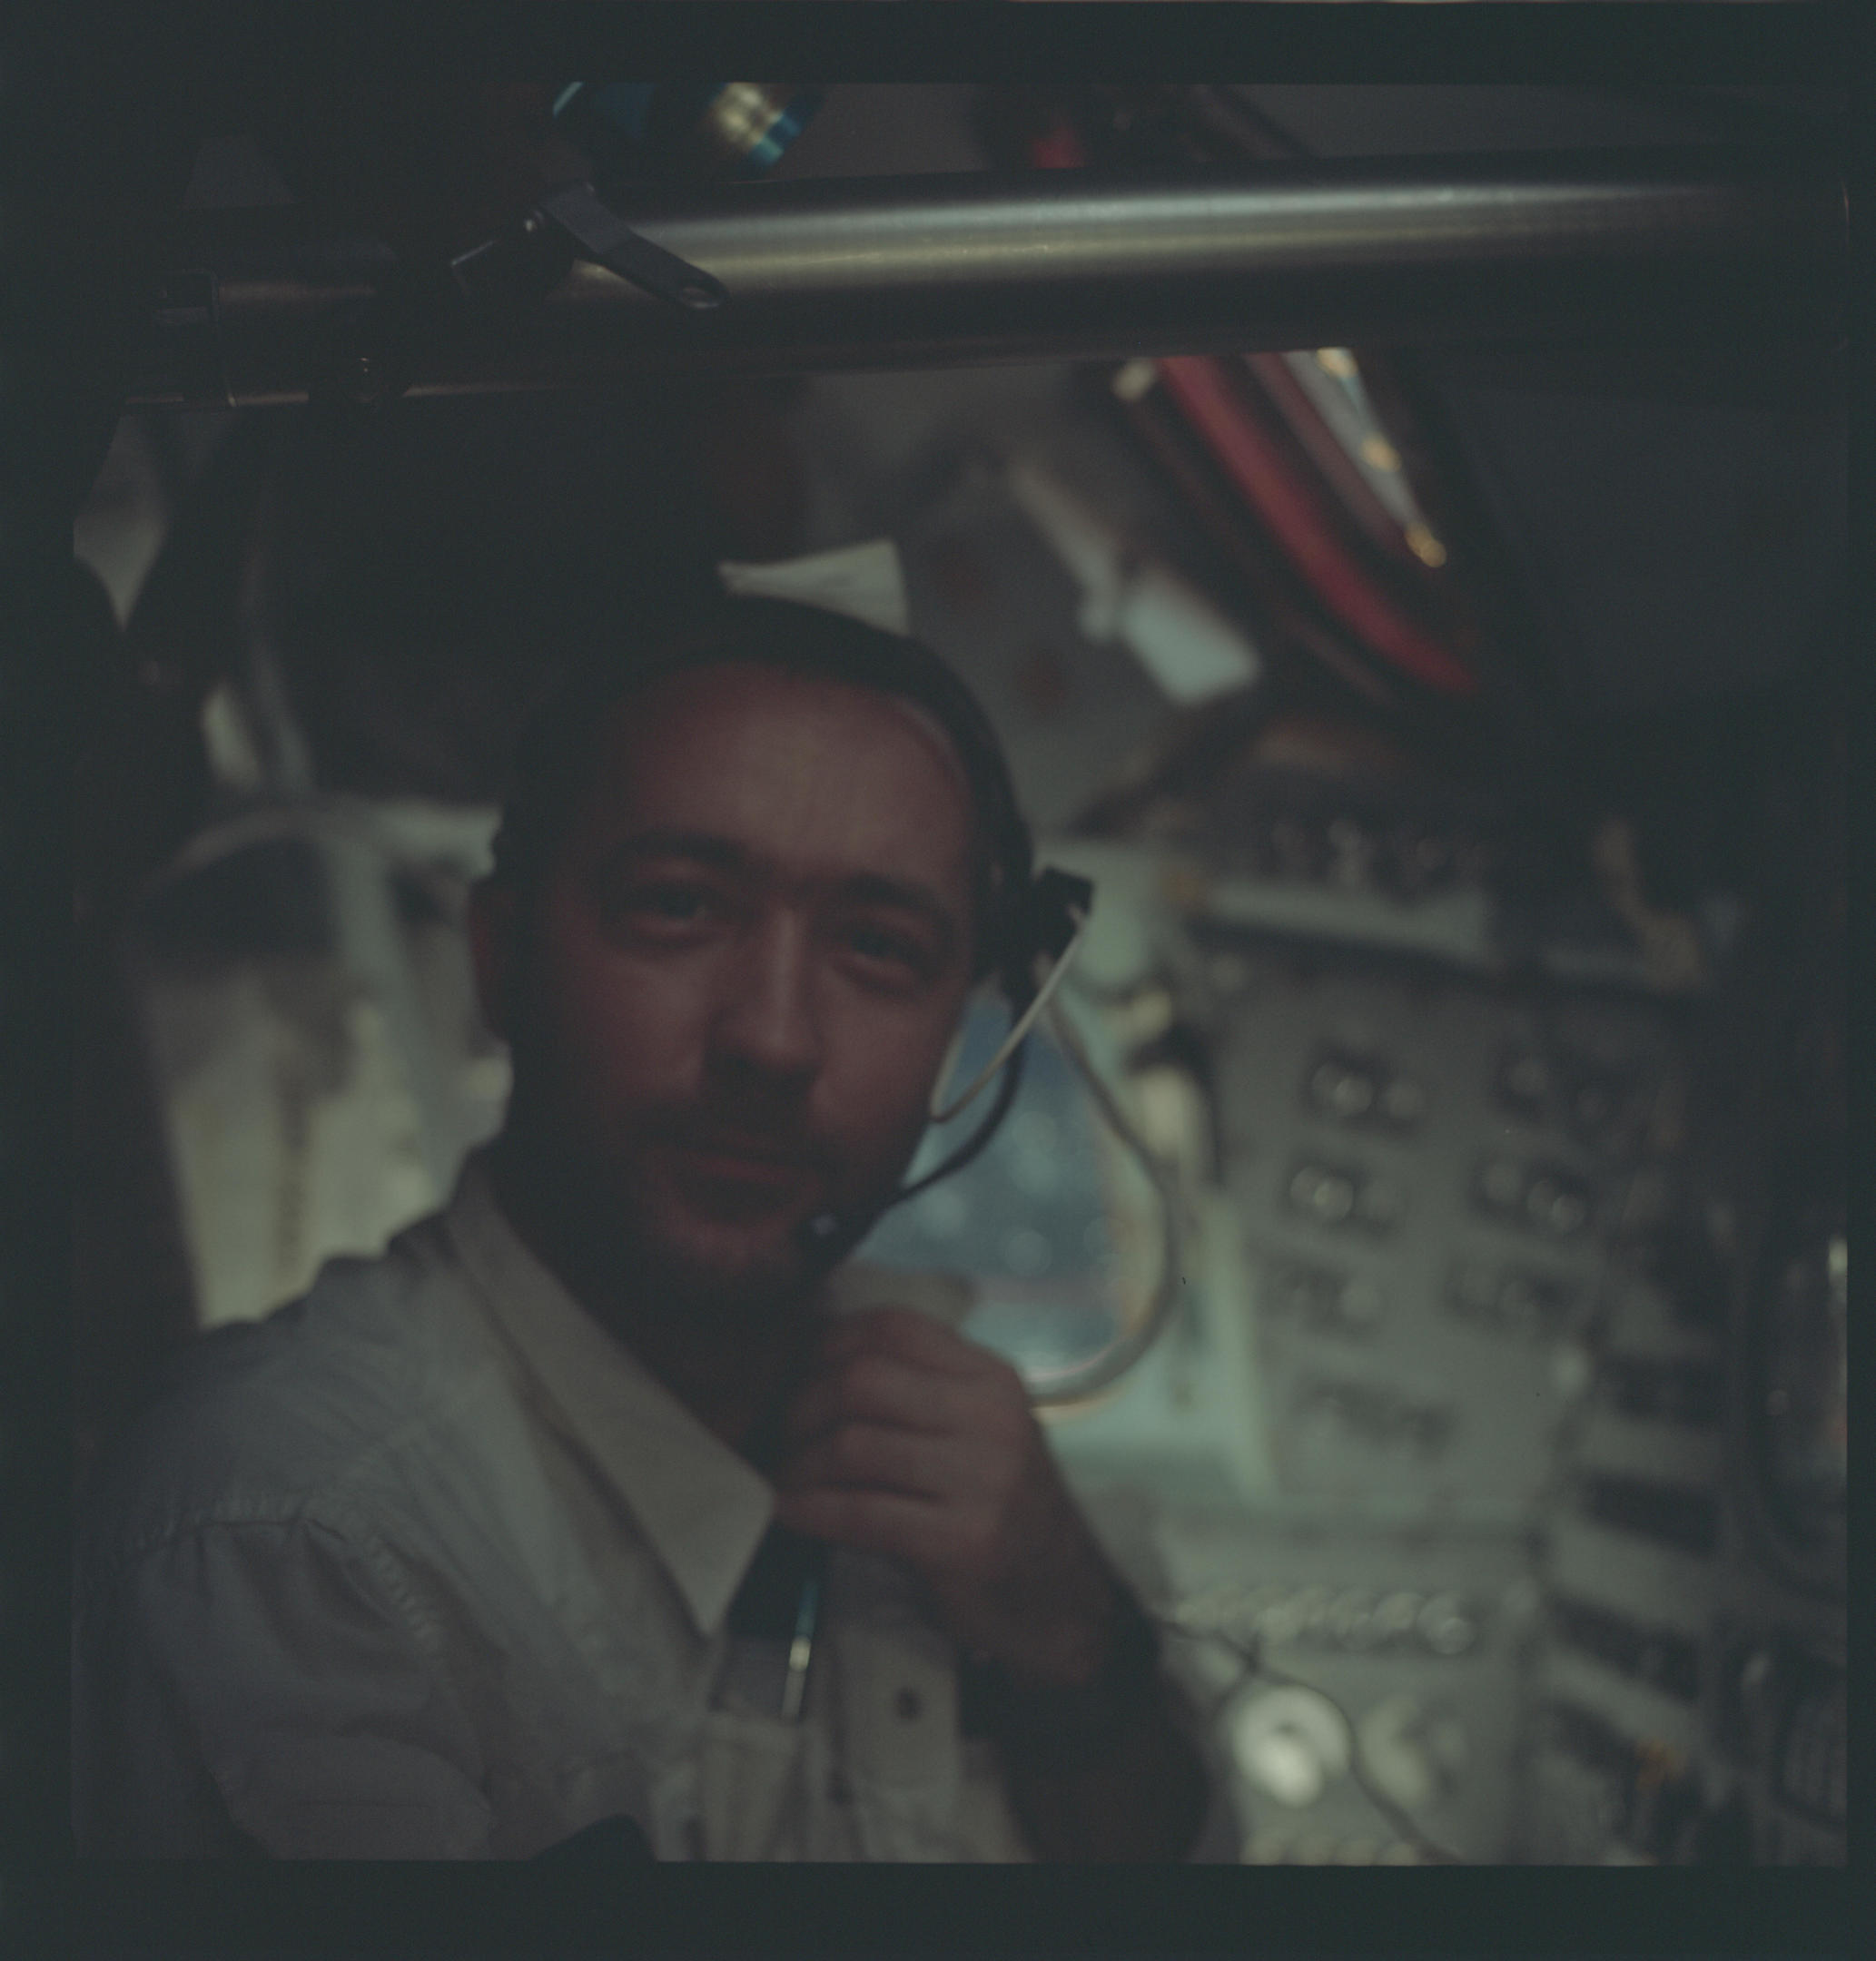 The astronauts took very few pictures of each other